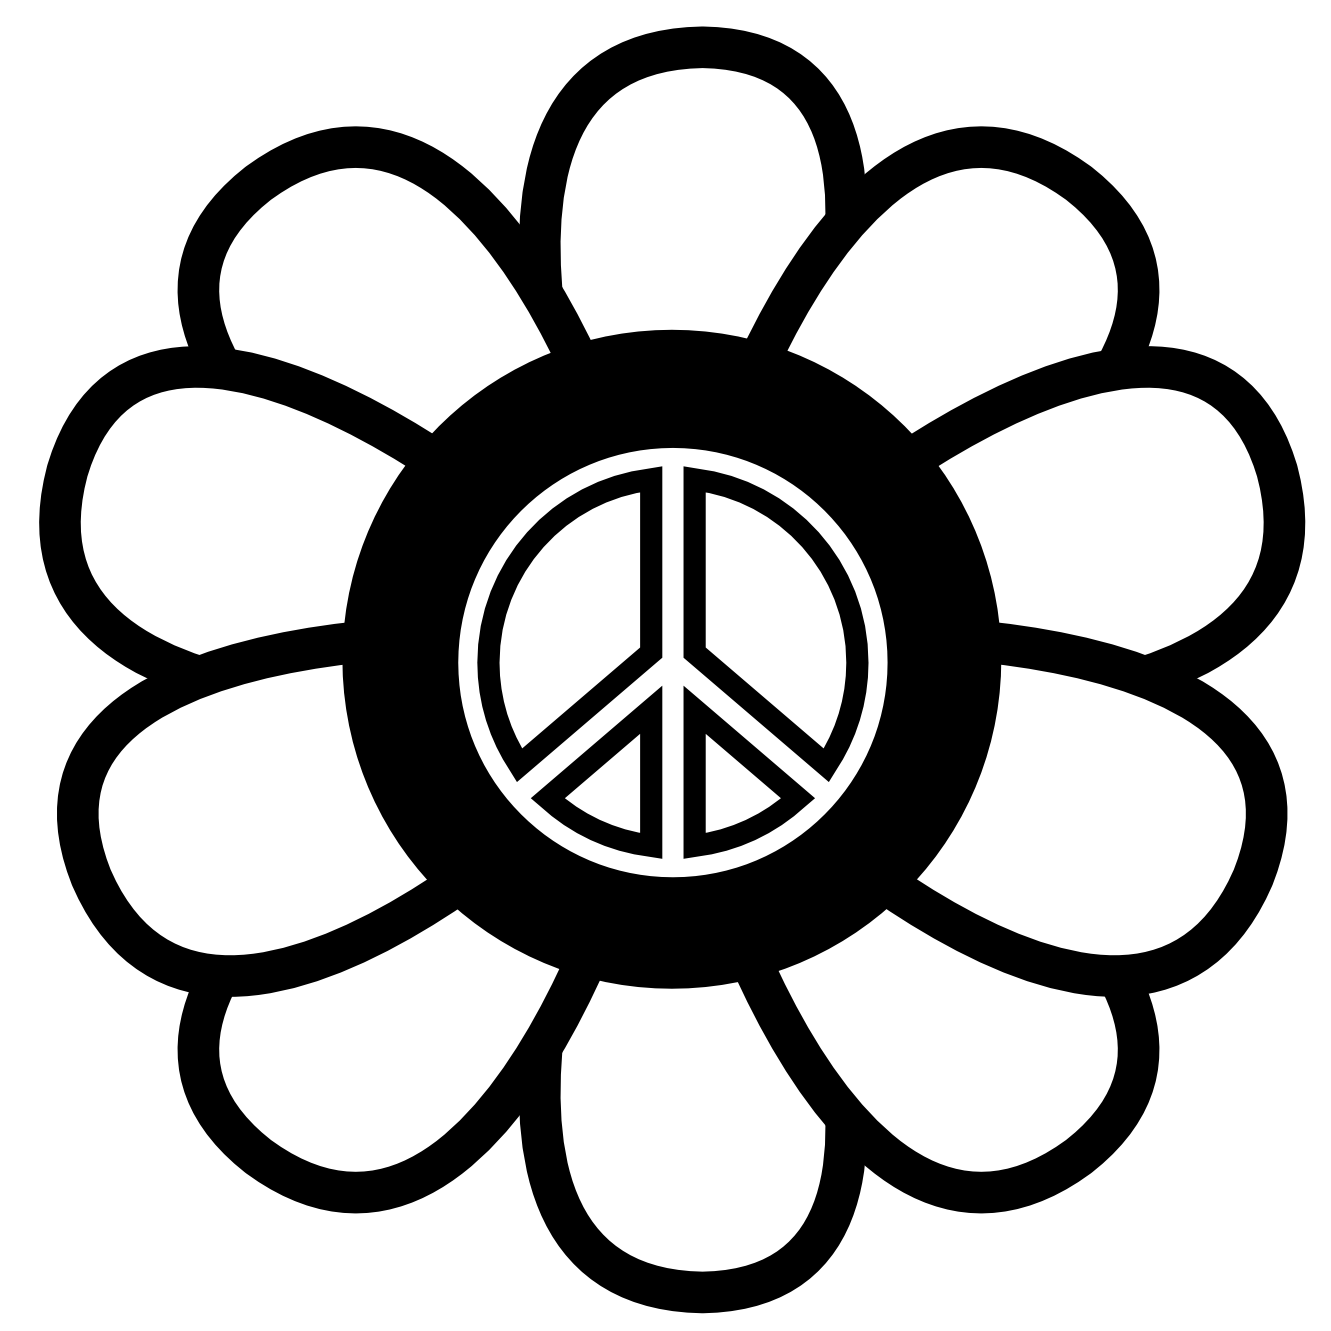 World drawing at getdrawings. Hippie clipart peace quiet